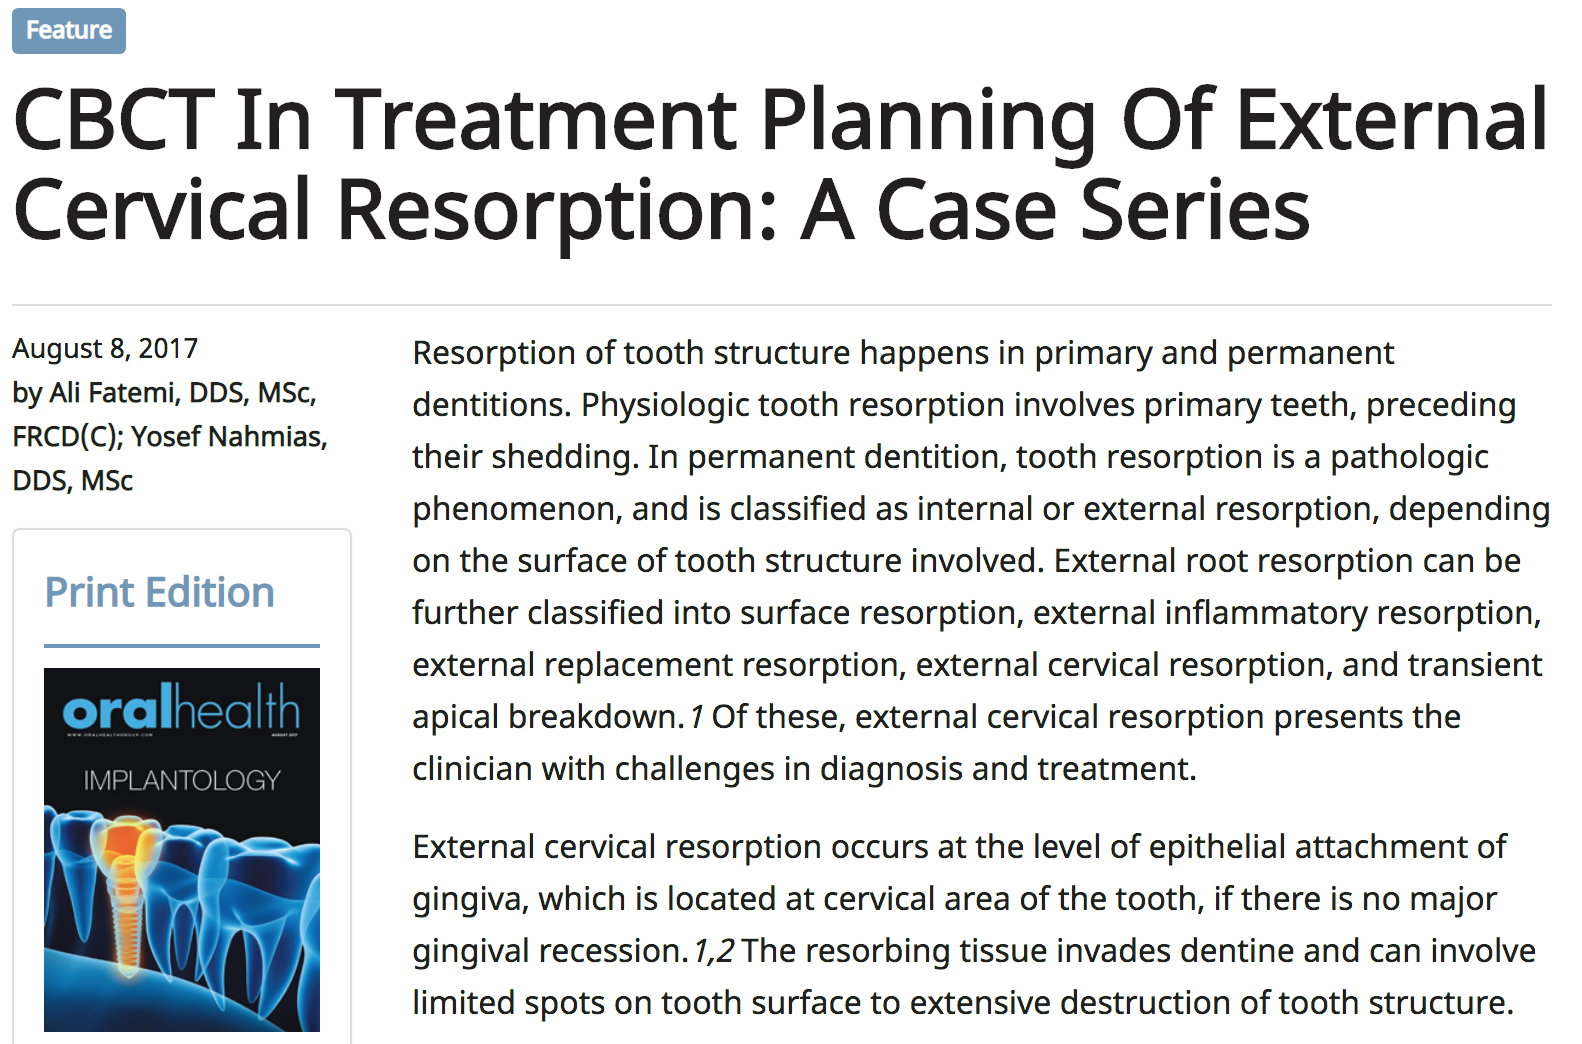 Dr. Ali Fatemi - CBCT In Treatment Planning Of External Cervical Resorption: A Case Series